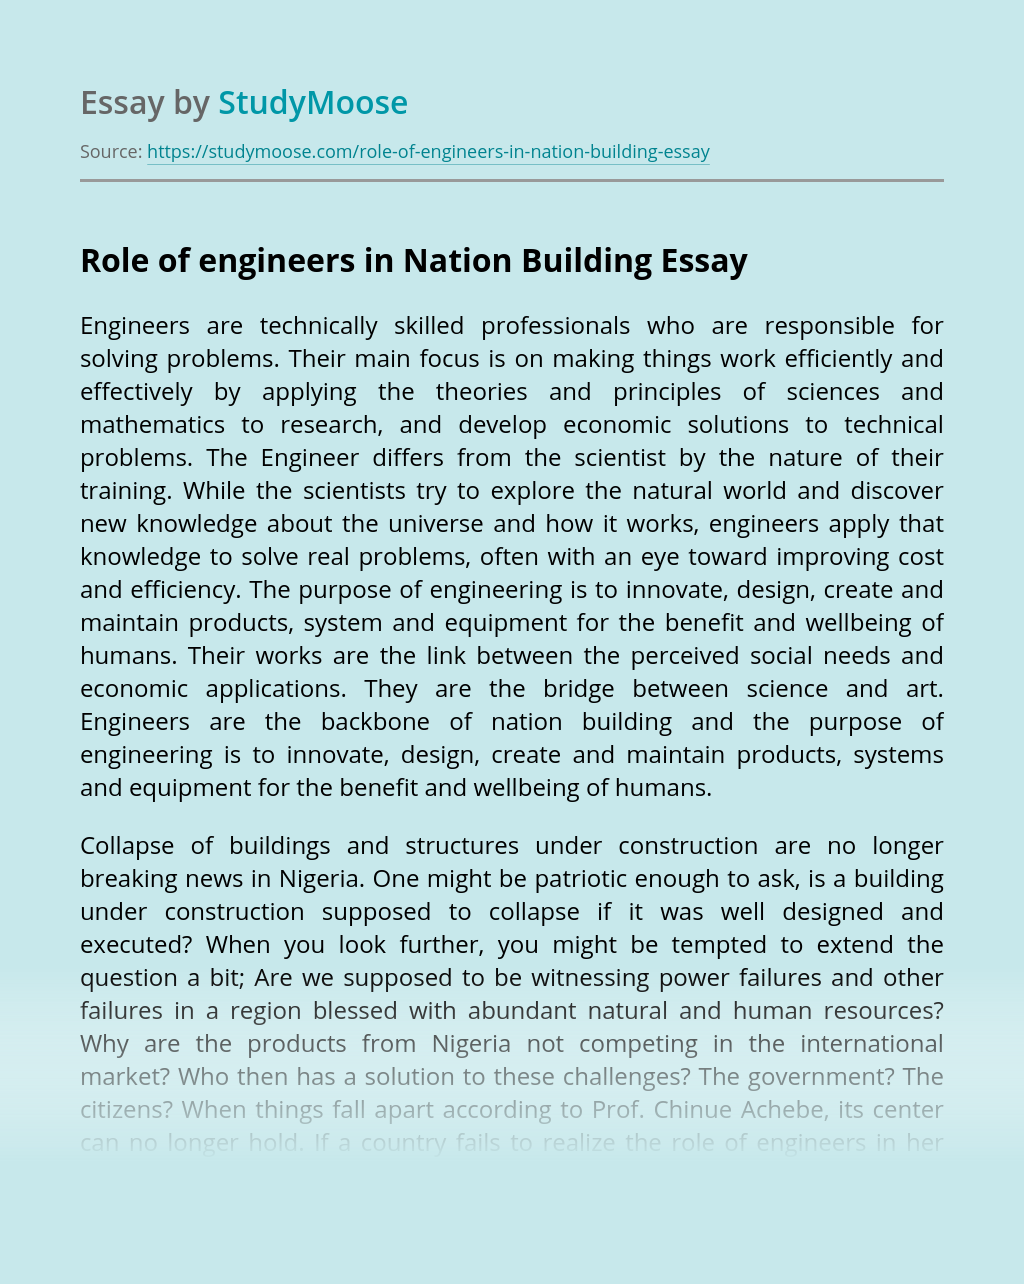 Role of engineers in Nation Building